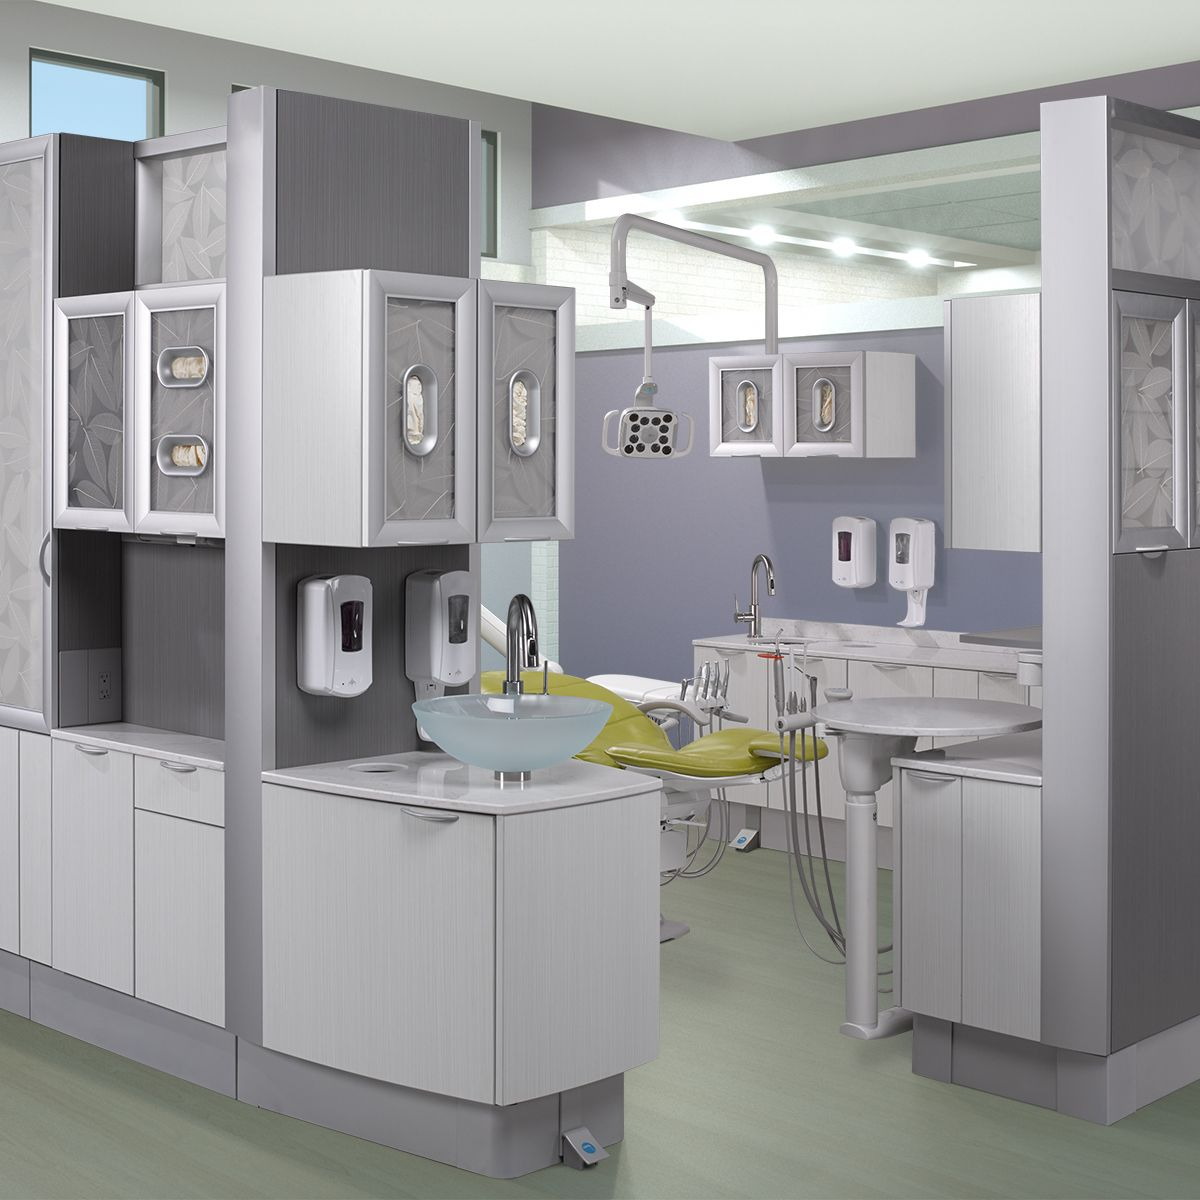 a-dec inspire dental furniture. featured dental office decor